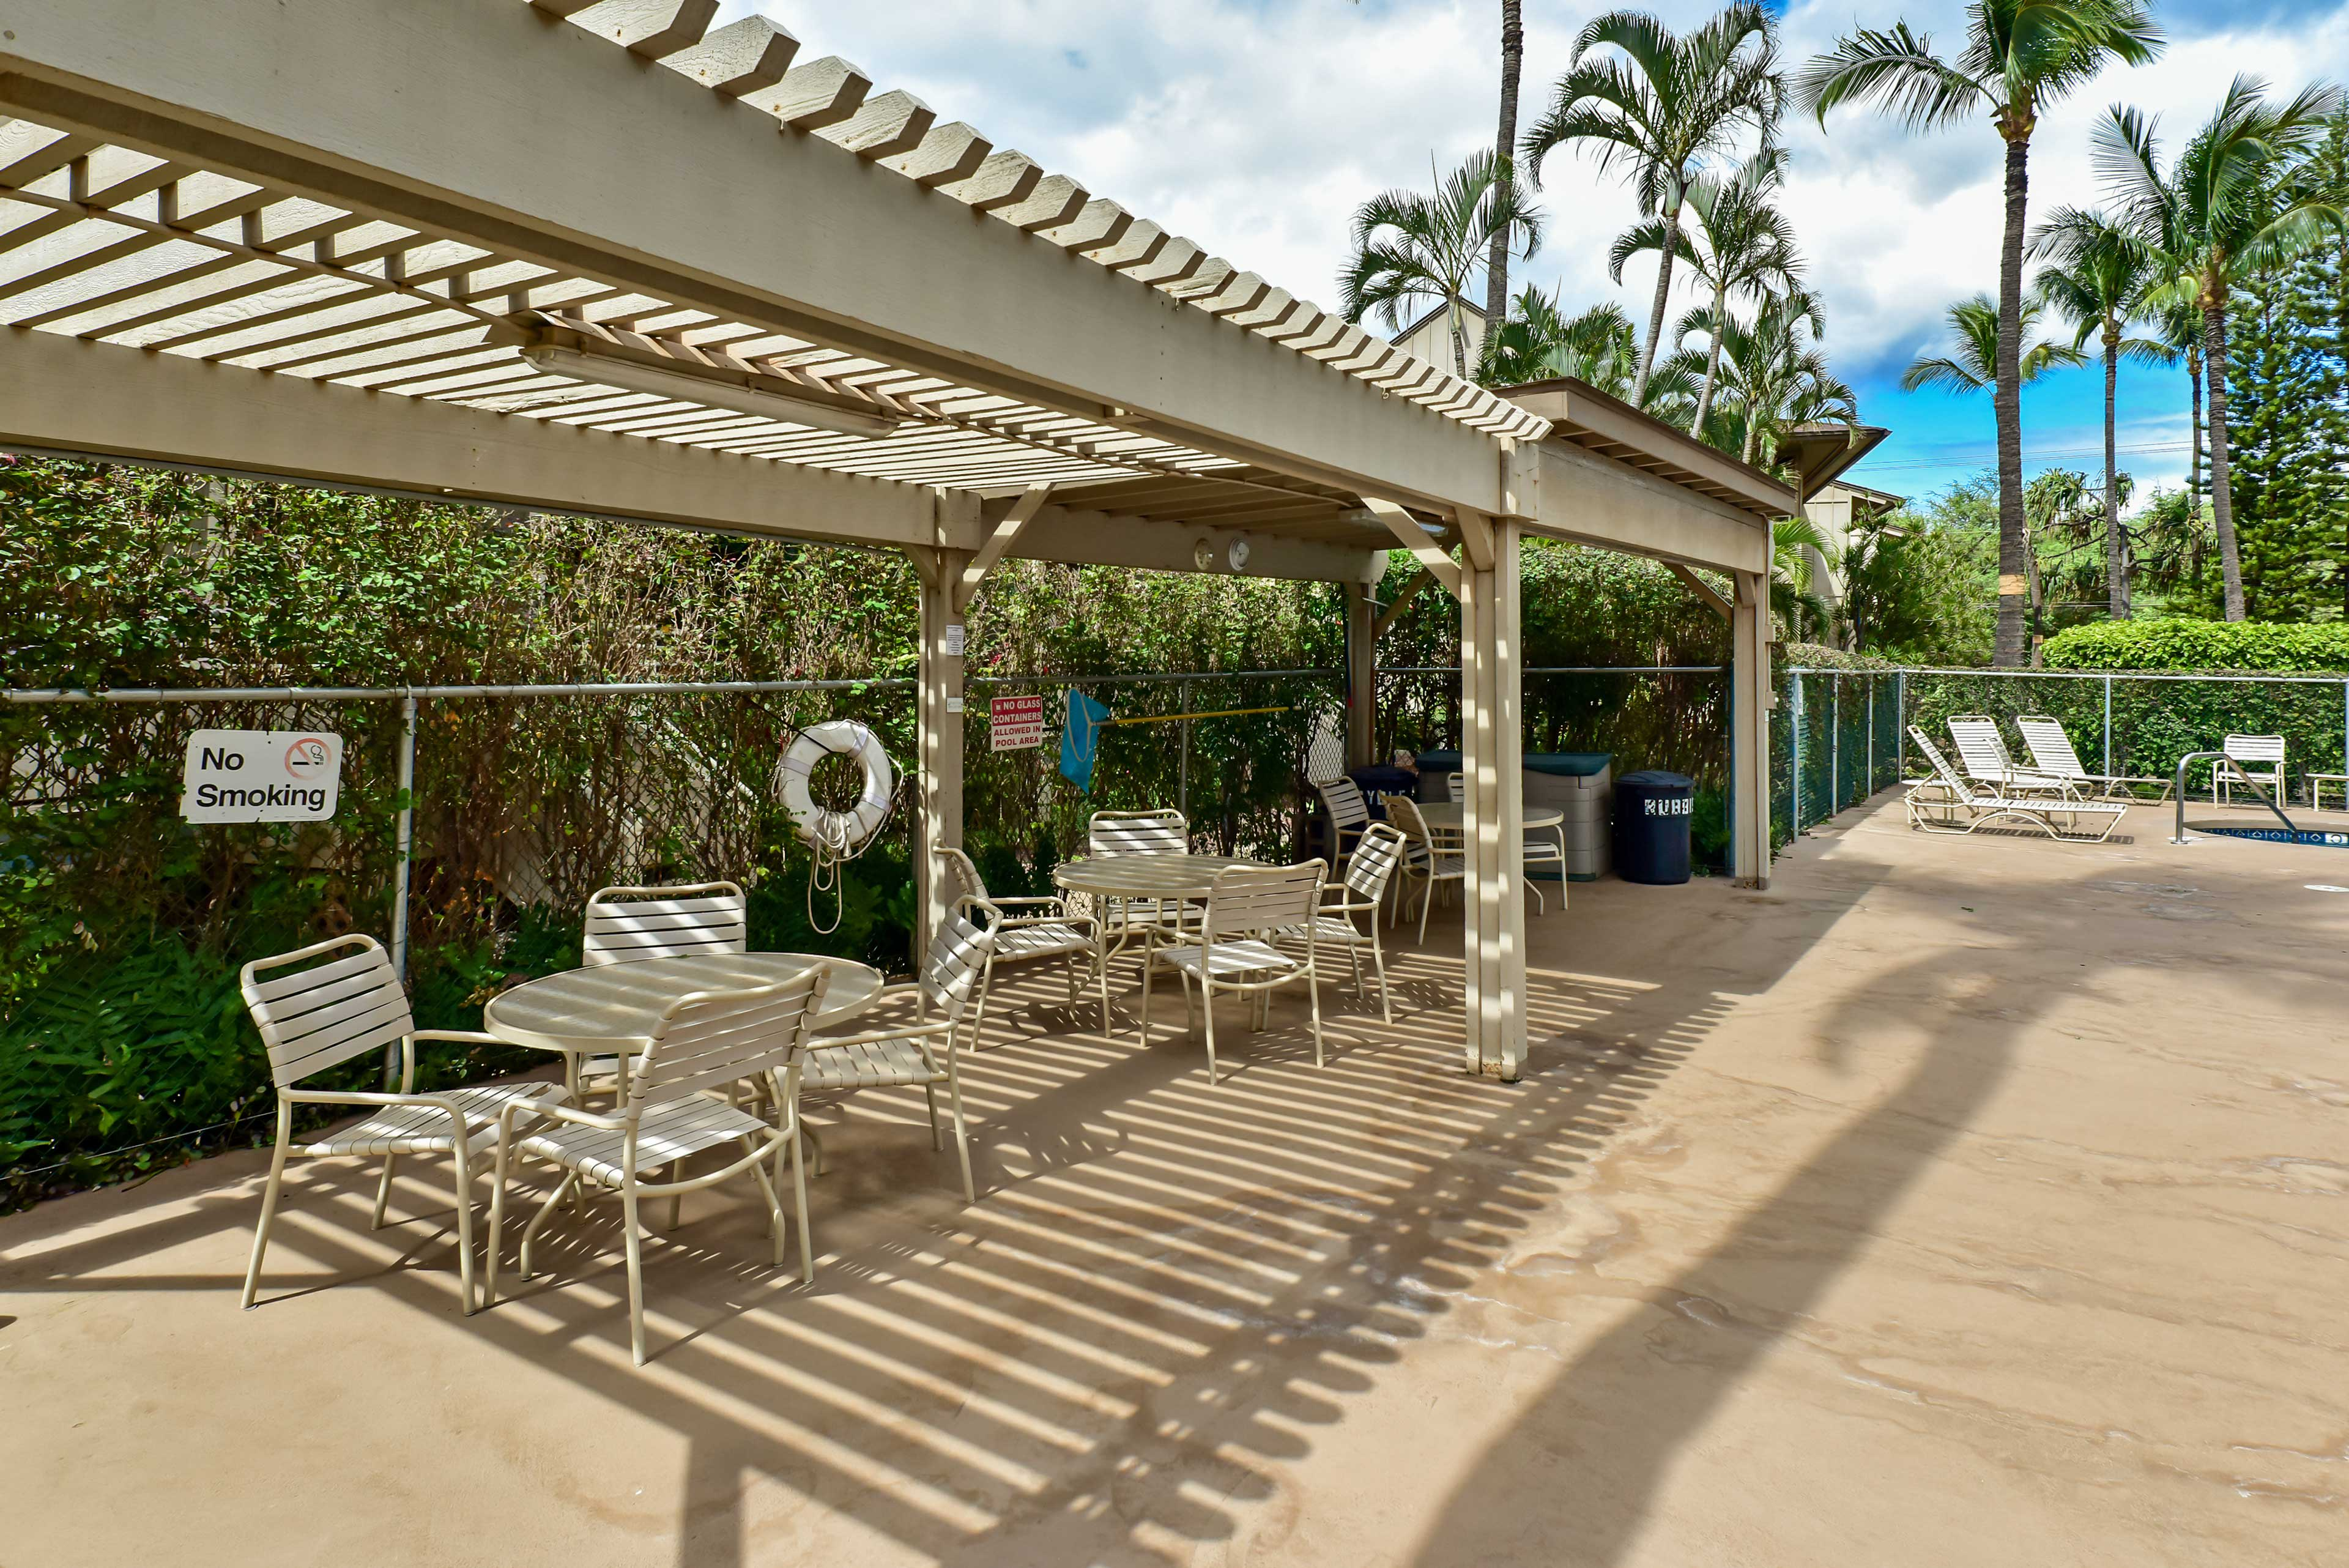 The pool area features a shaded area, where you can get a break from the sun.